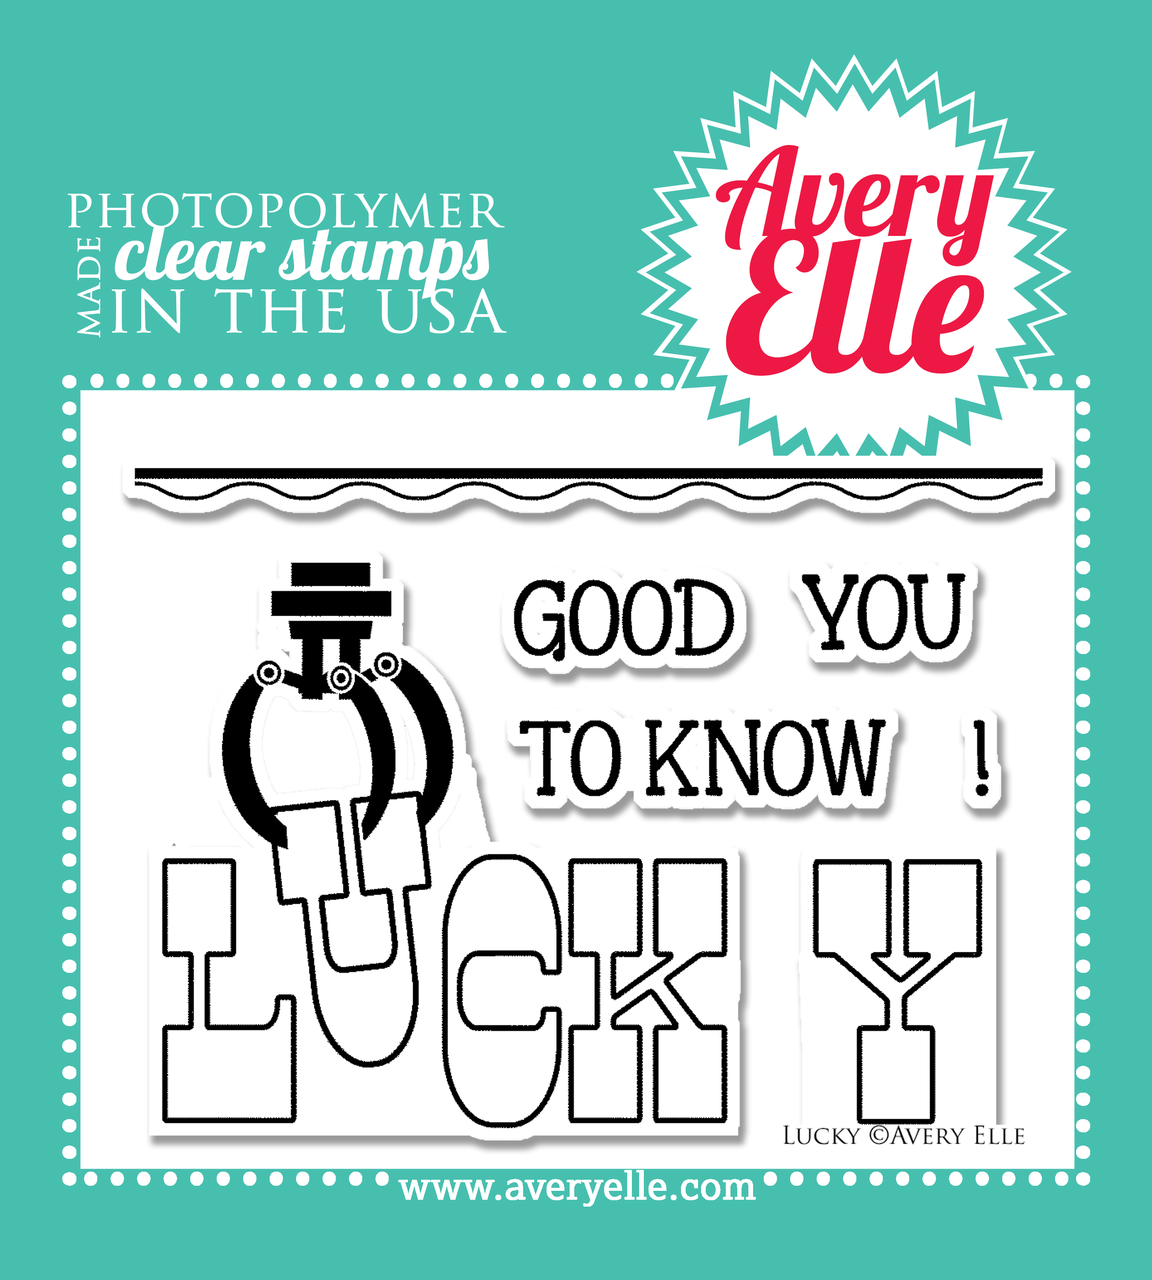 "Avery Elle Lucky 4"" x 3"" clear stamp set"